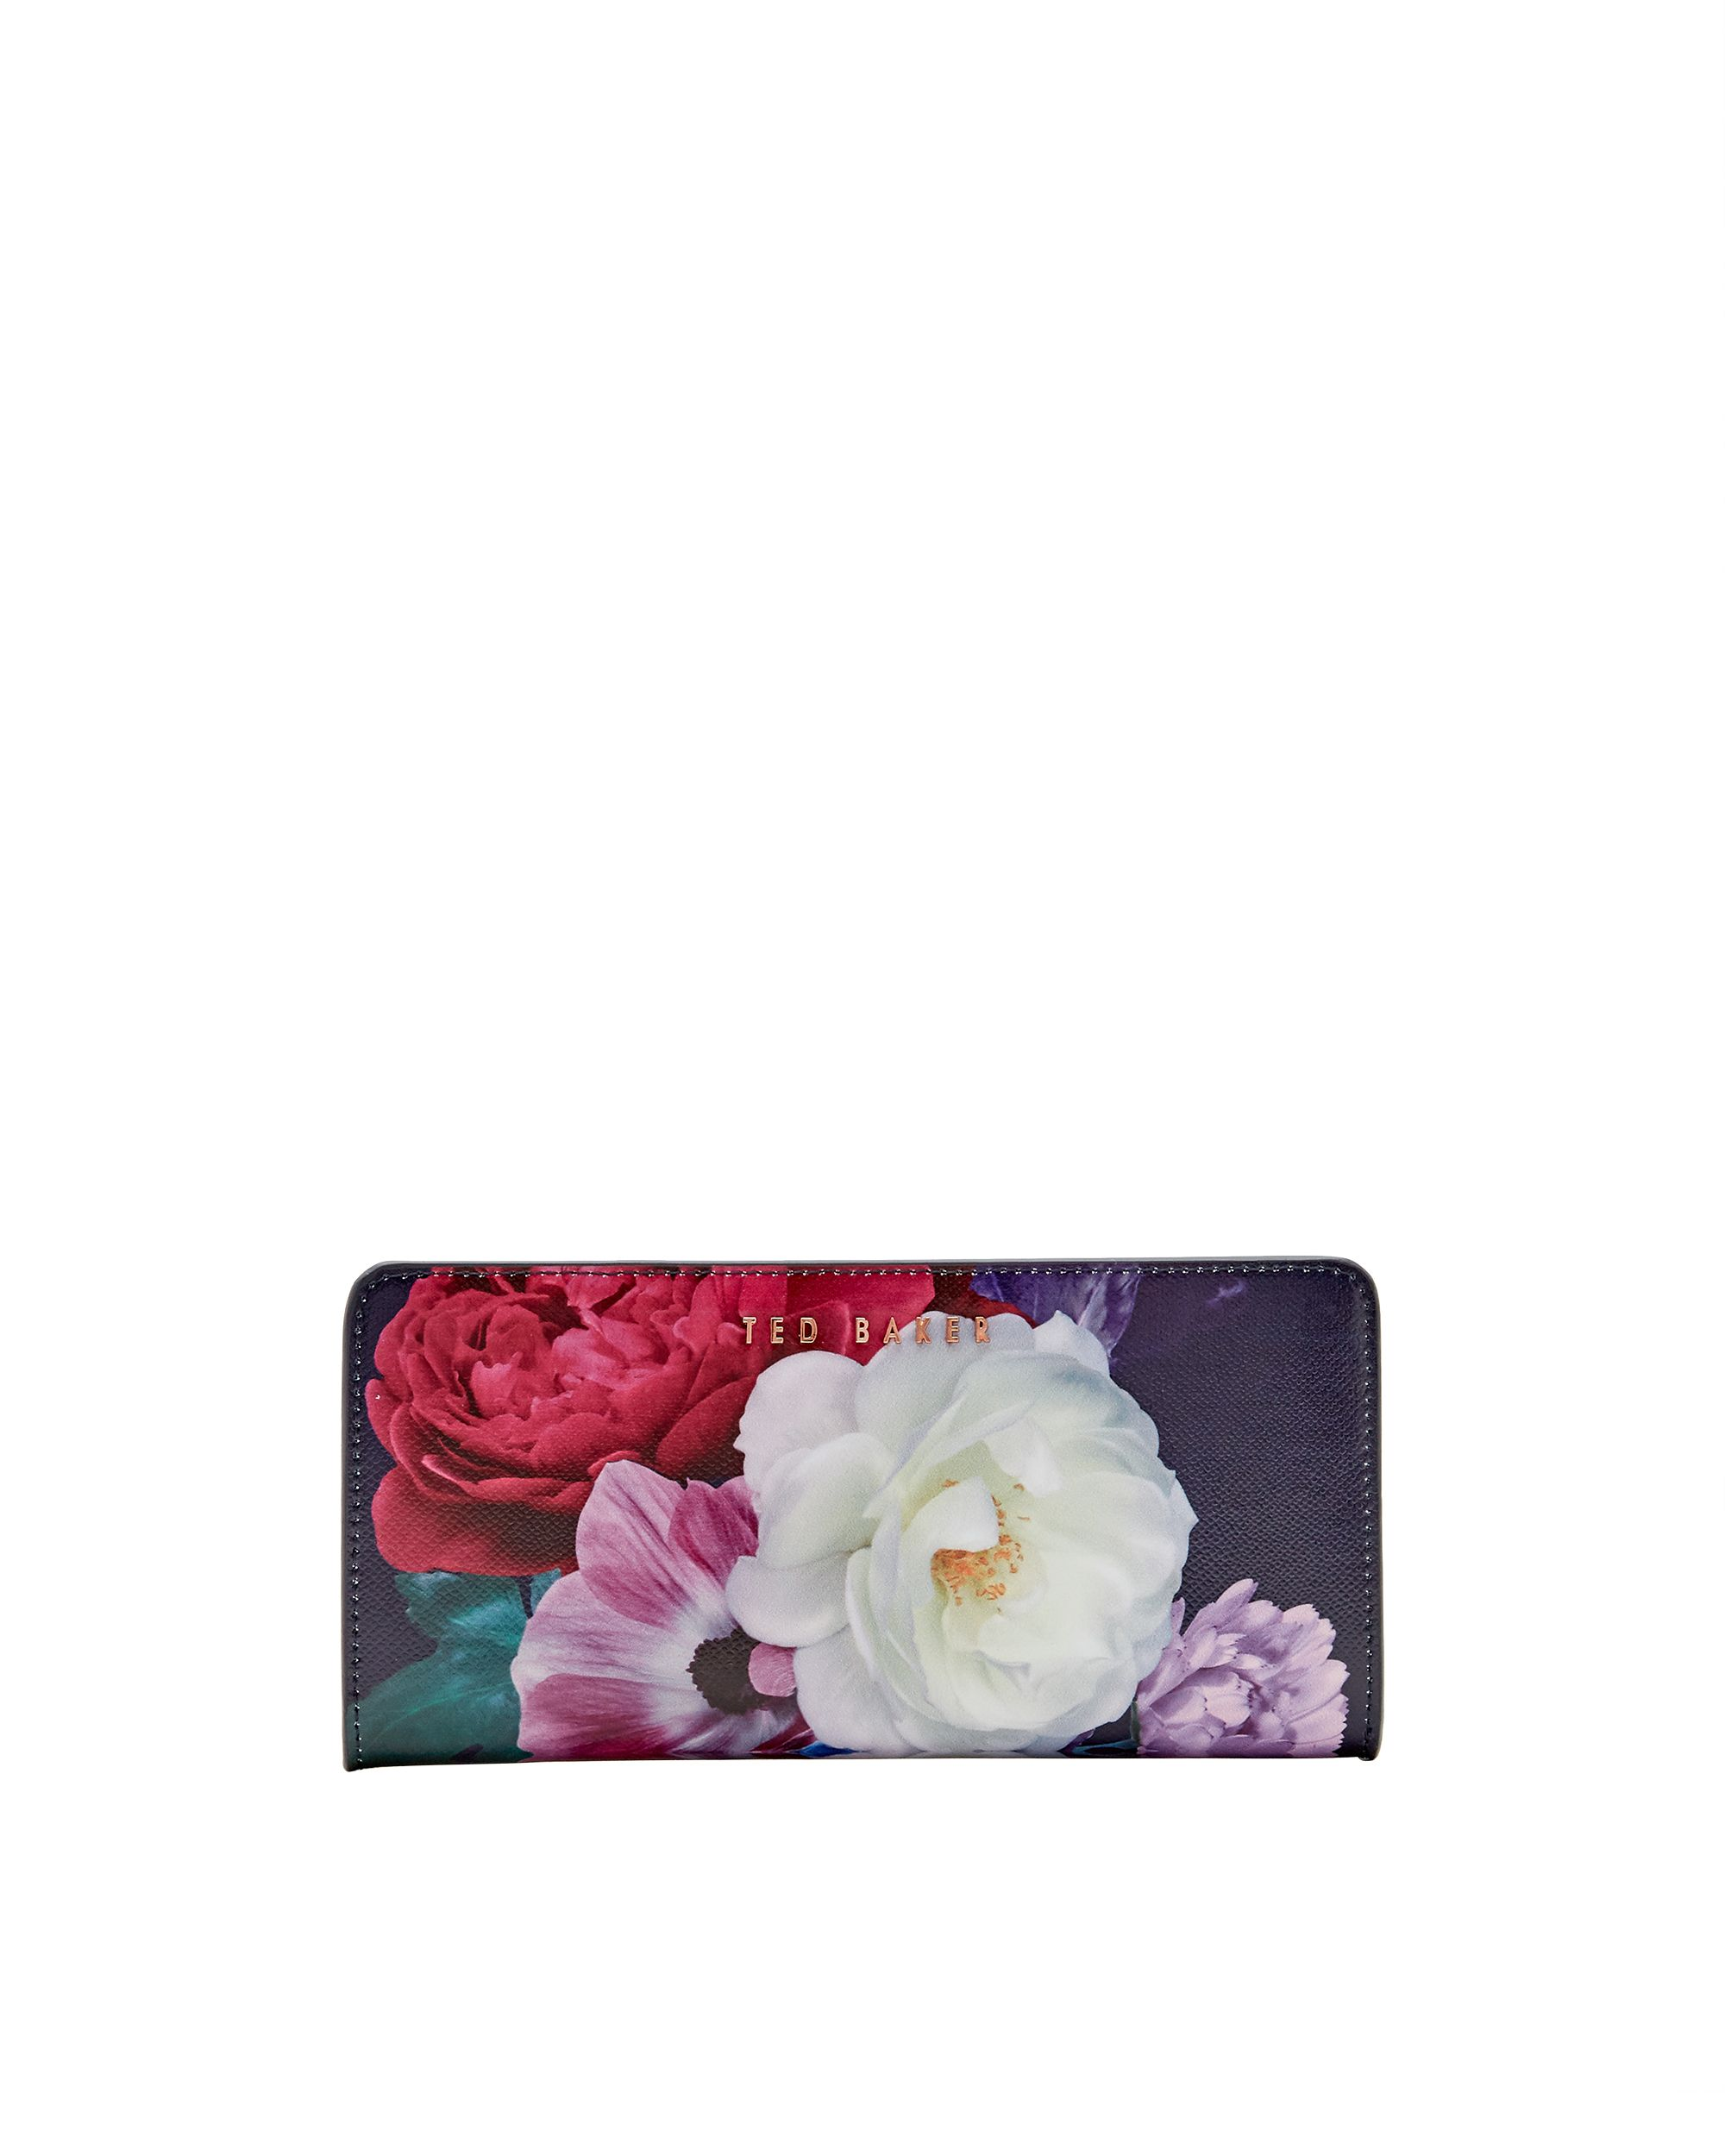 Ted Baker Darenio Blushing Bouquet matinee purse Navy